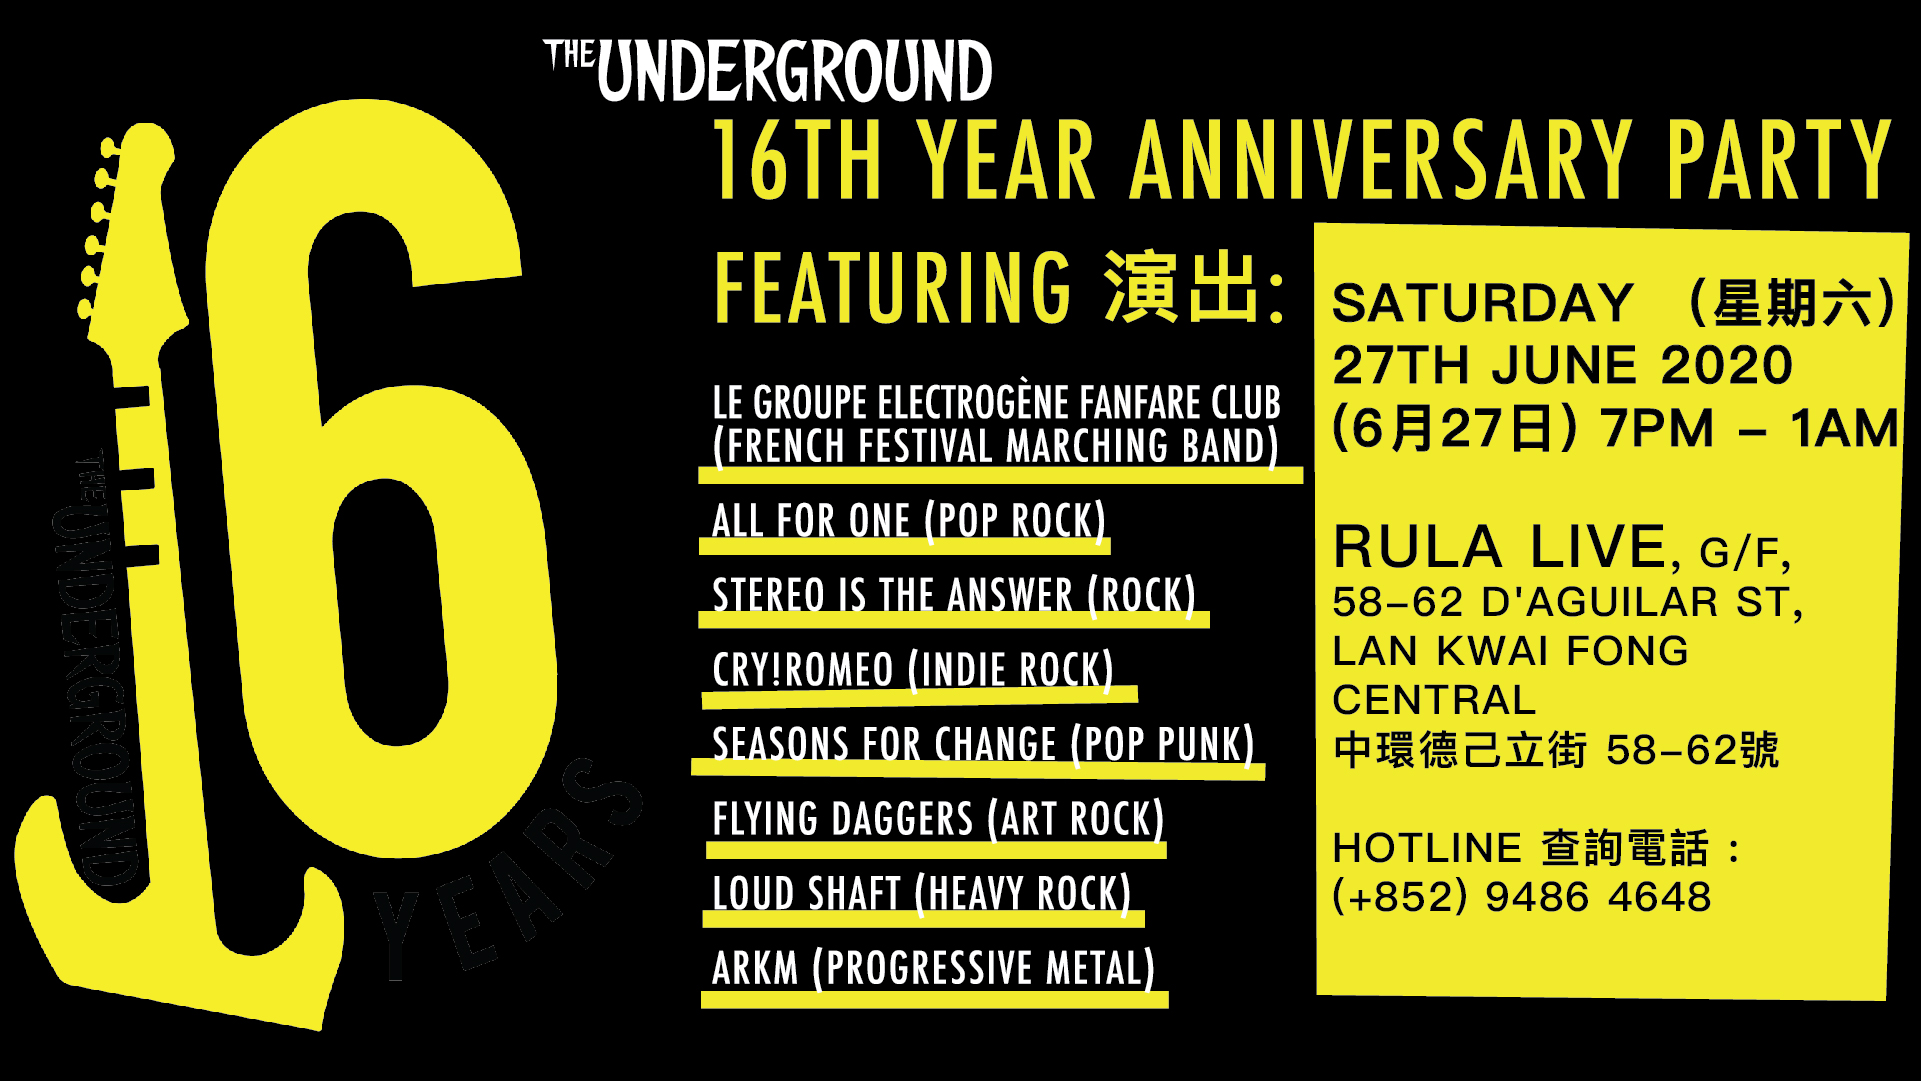 The Underground's 16th Year Anniversary Party (live Music)